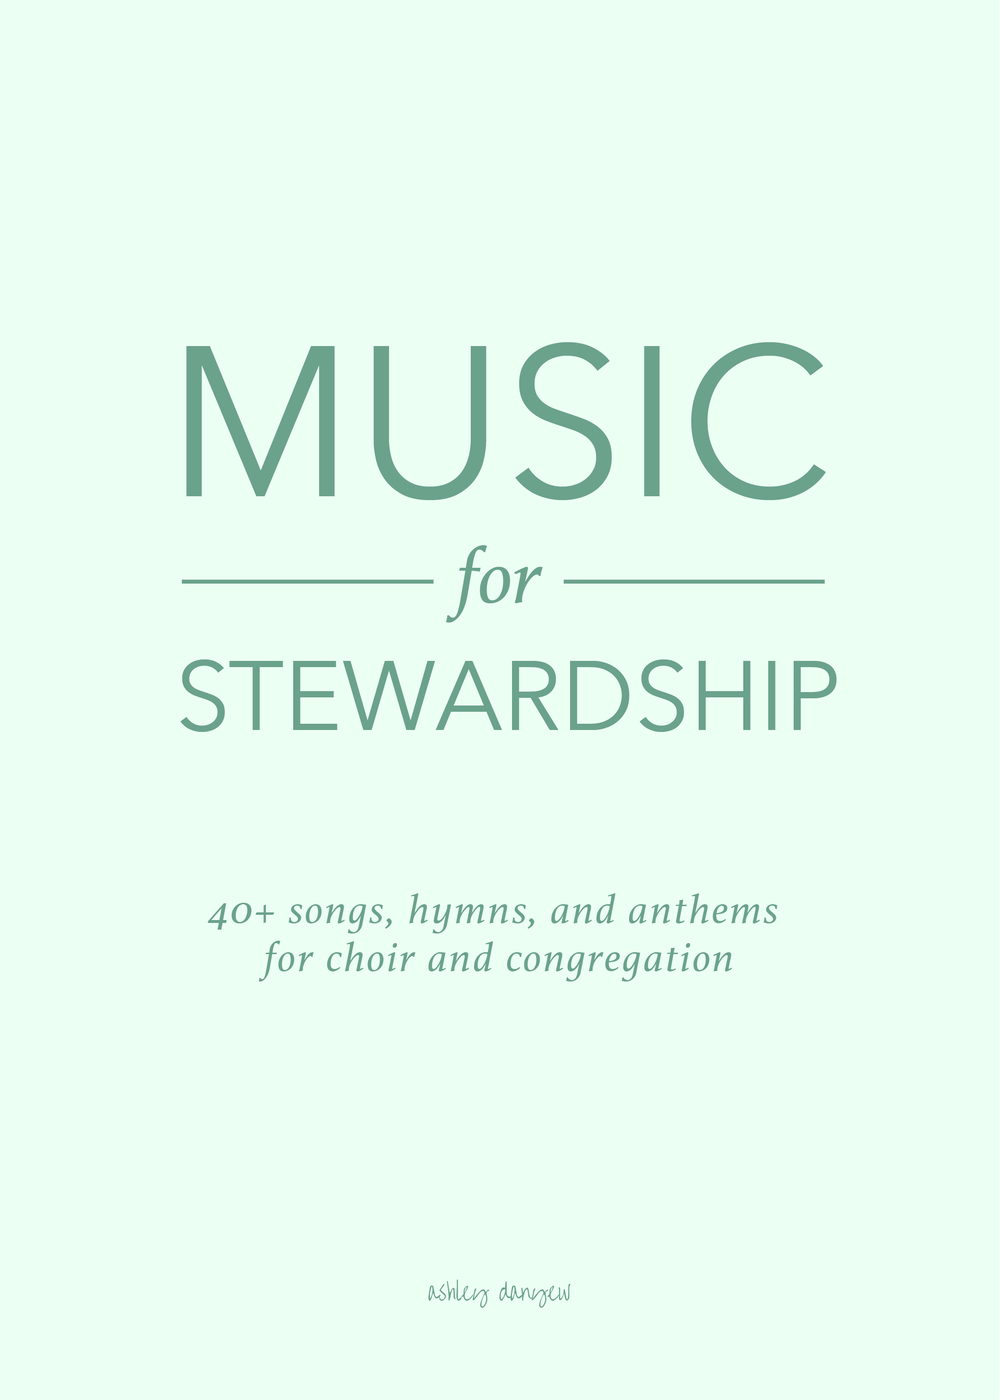 Music for Stewardship: 40+ Hymns, Songs, and Anthems